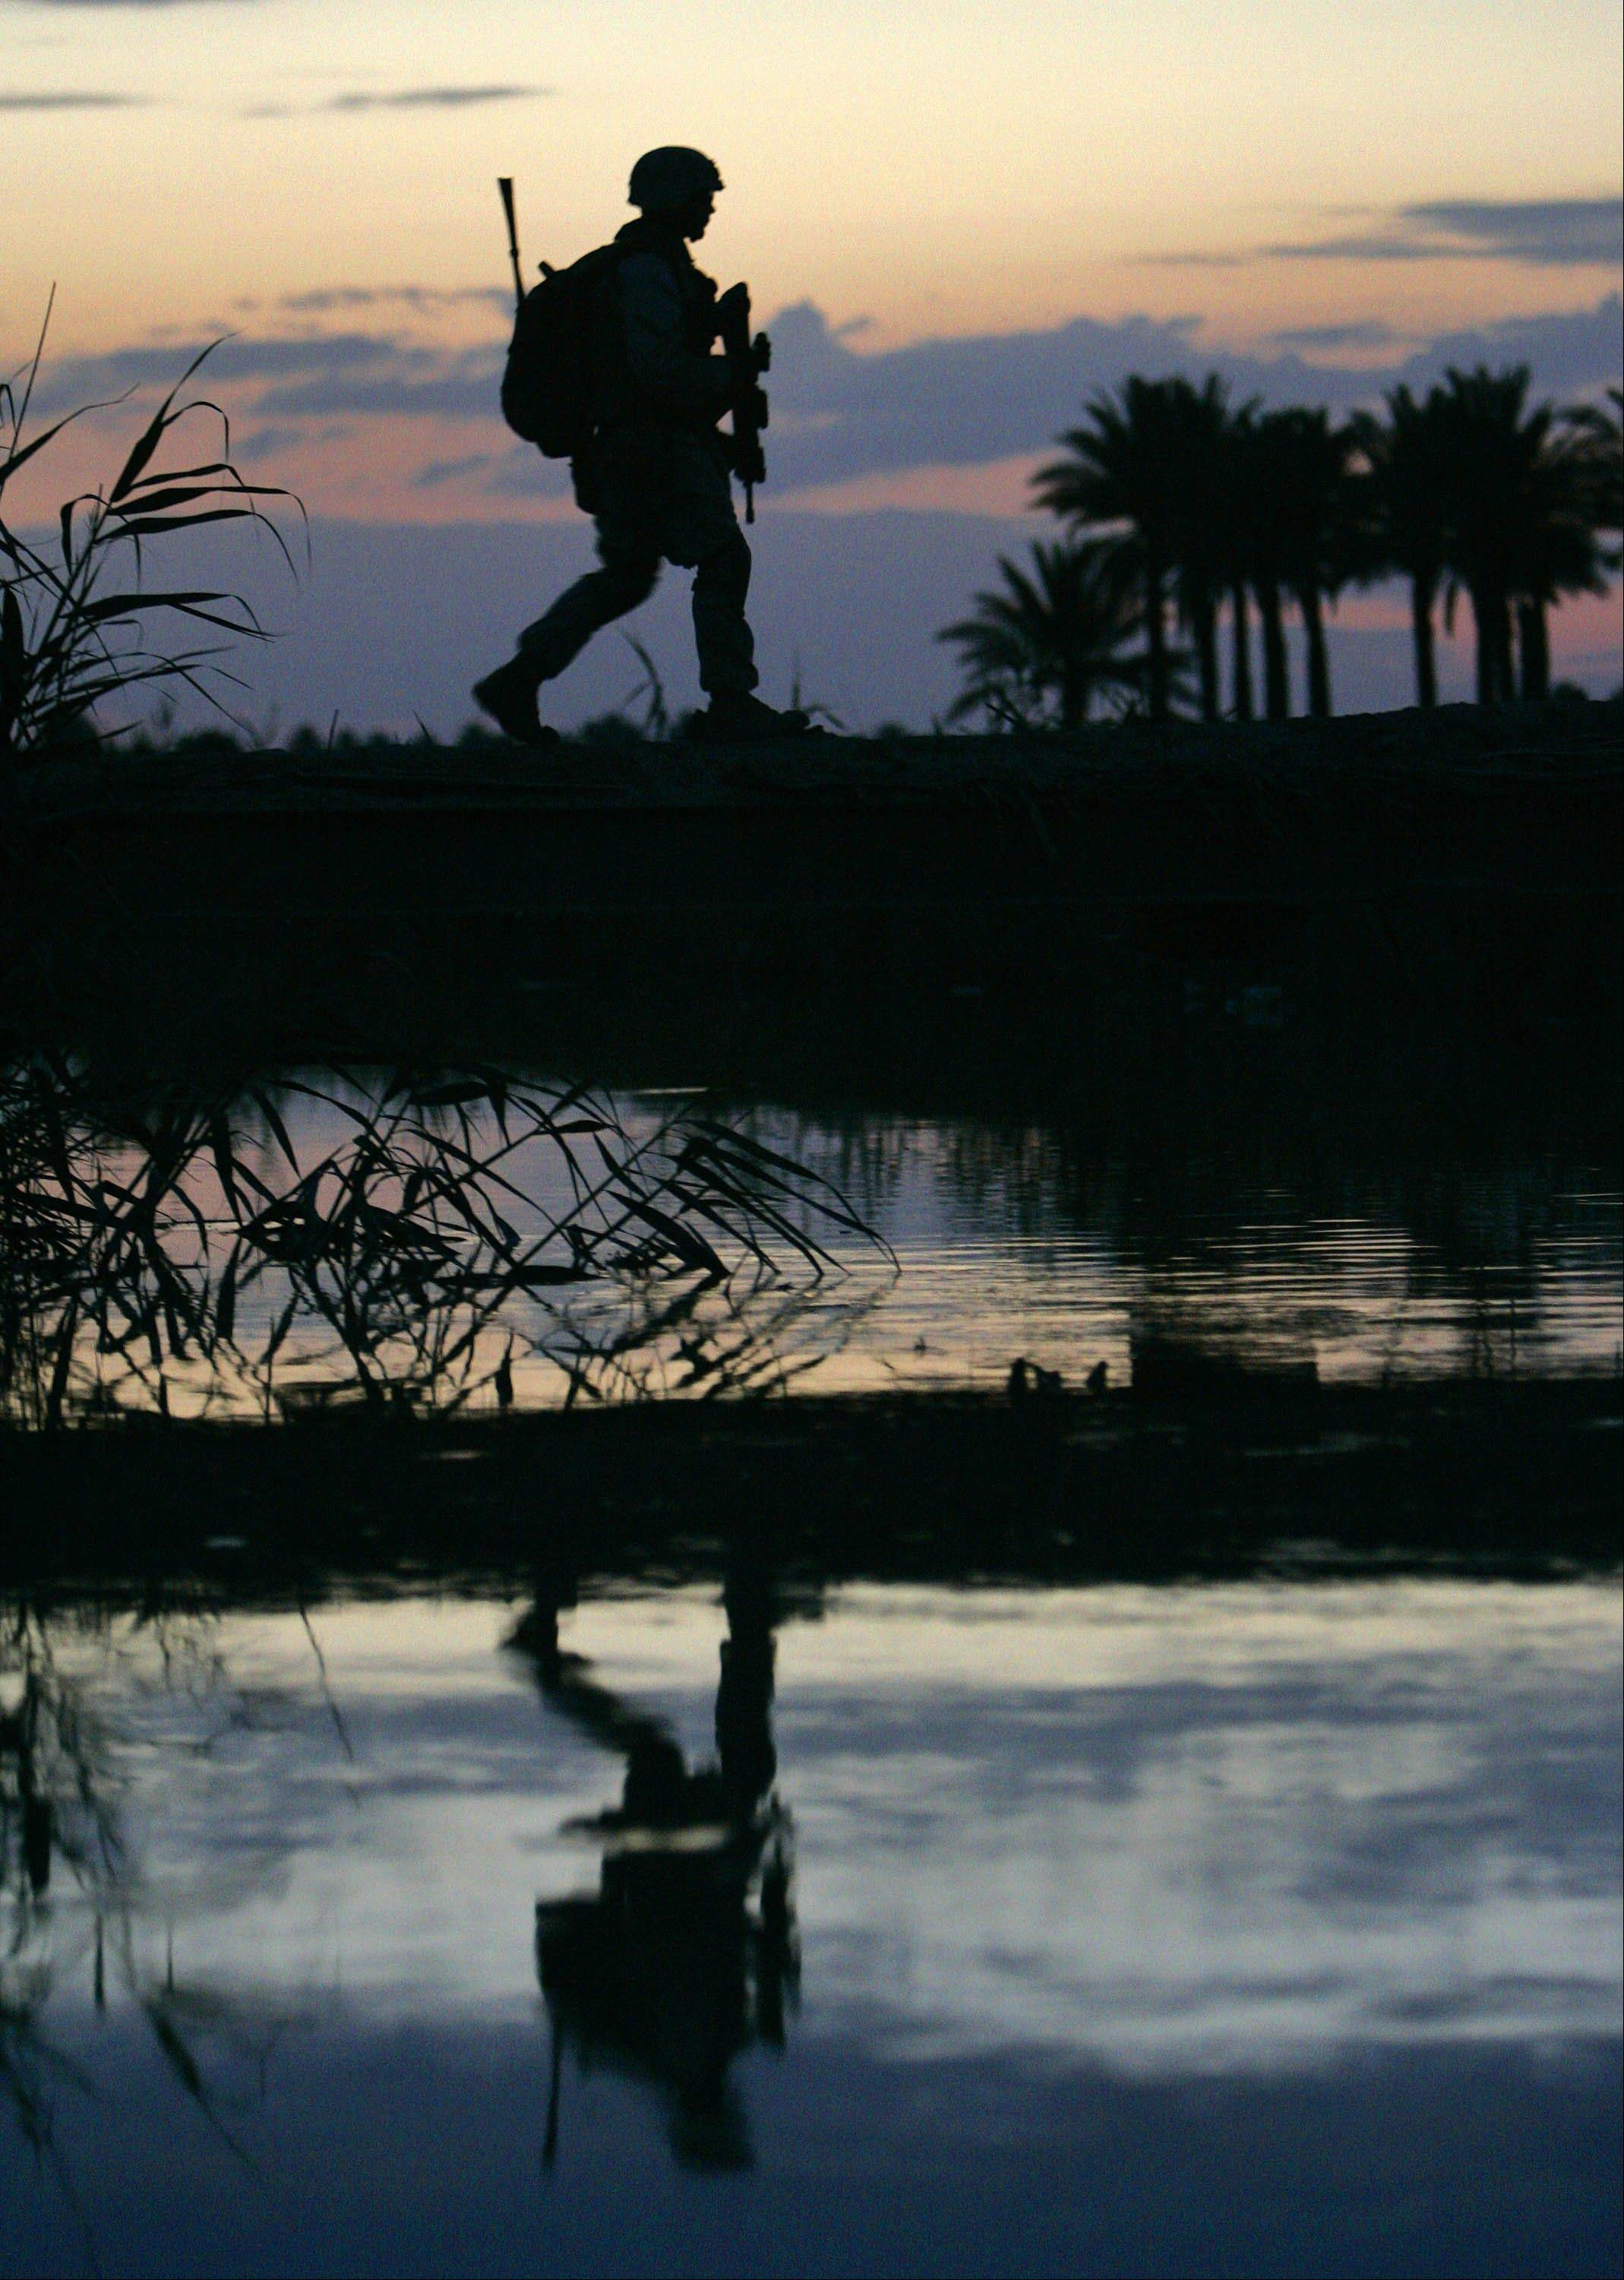 A U.S. Marine crosses a footbridge while patrolling in Karmah, 50 miles west of Baghdad, Iraq, Wednesday, April 26, 2006.